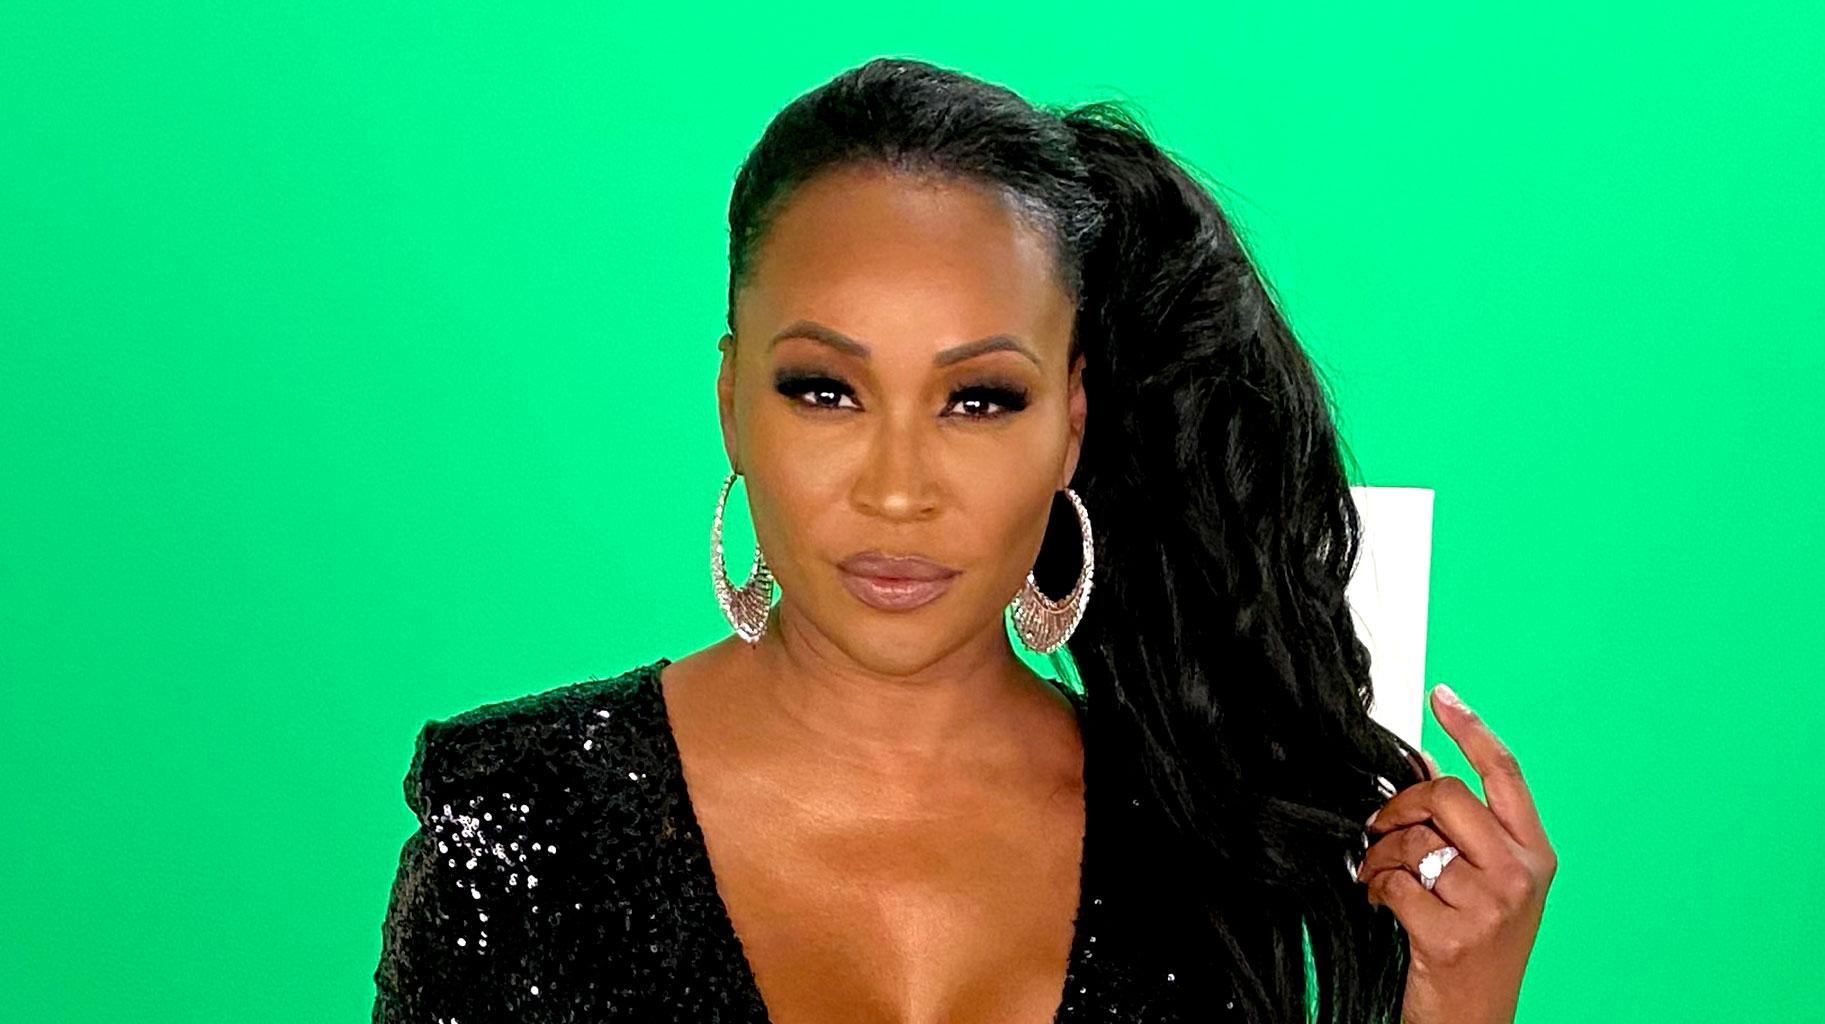 Cynthia Bailey Wishes A Happy Birthday To Her Daughter - See Her Message And Photos